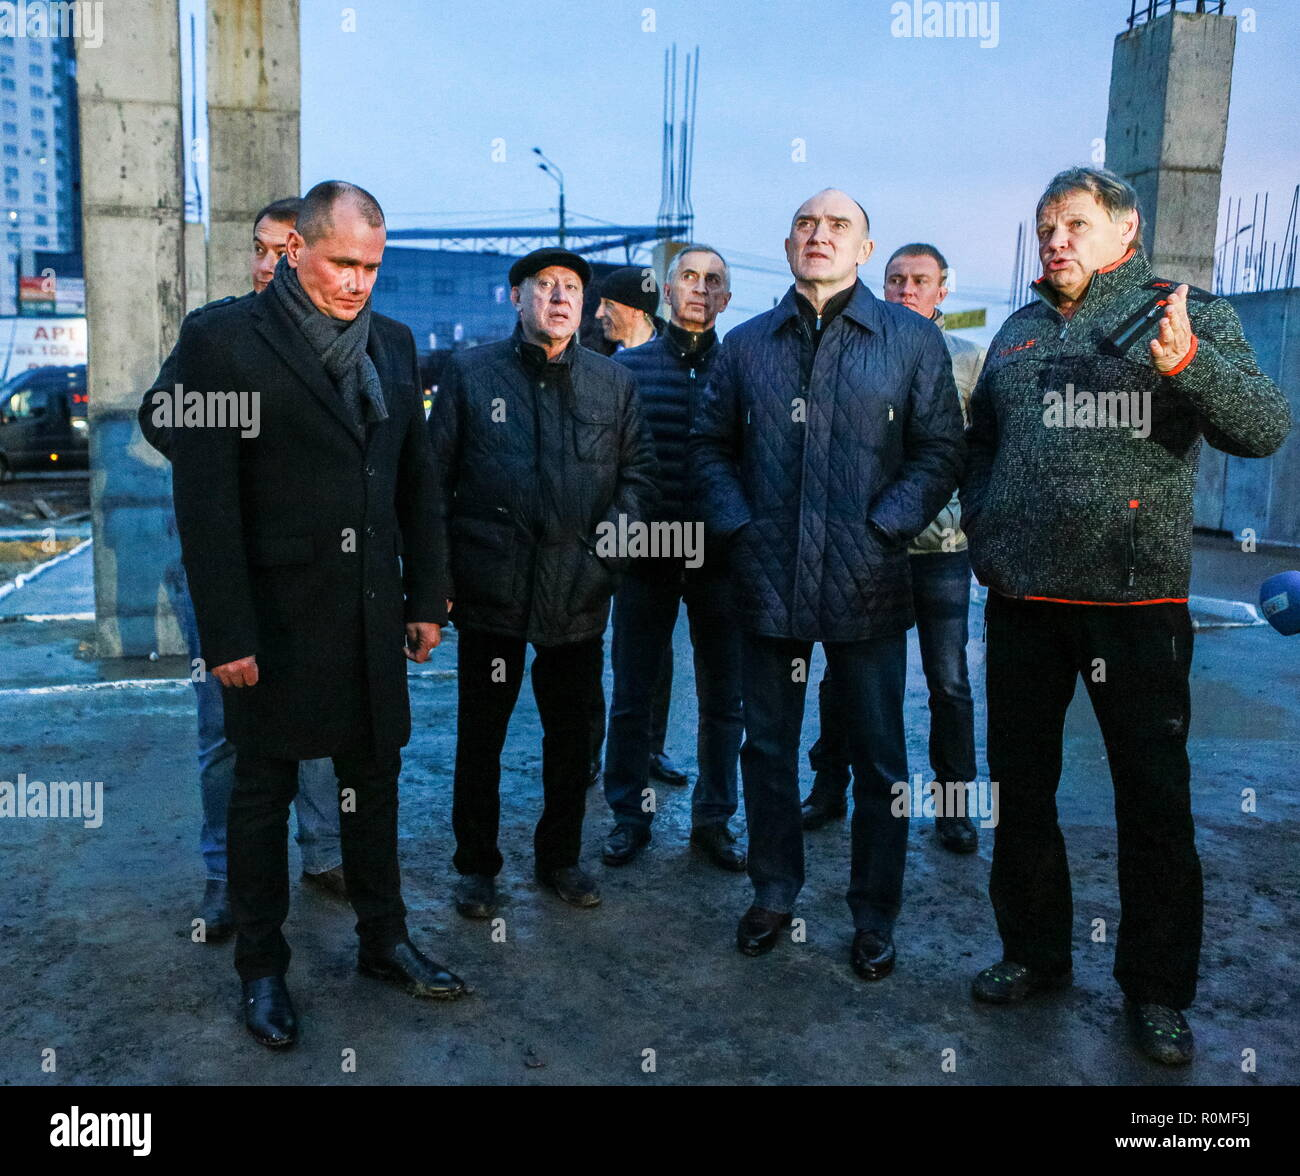 Chelyabinsk, Russia. 04th Nov, 2018. CHELYABINSK, RUSSIA - NOVEMBER 4, 2018: The Mayor of Chelyabinsk Yevgeny Teftelev (2nd L), and the Governor of Chelyabinsk Region Boris Dubrovsky (2nd R front), visit the construction site of the Taganai 2020 Congress Hall at Ulitsa Truda Street; in 2020, Chelyabinsk is going to host an SCO summit and a BRICS summit. Nail Fattakhov/TASS Credit: ITAR-TASS News Agency/Alamy Live News - Stock Image